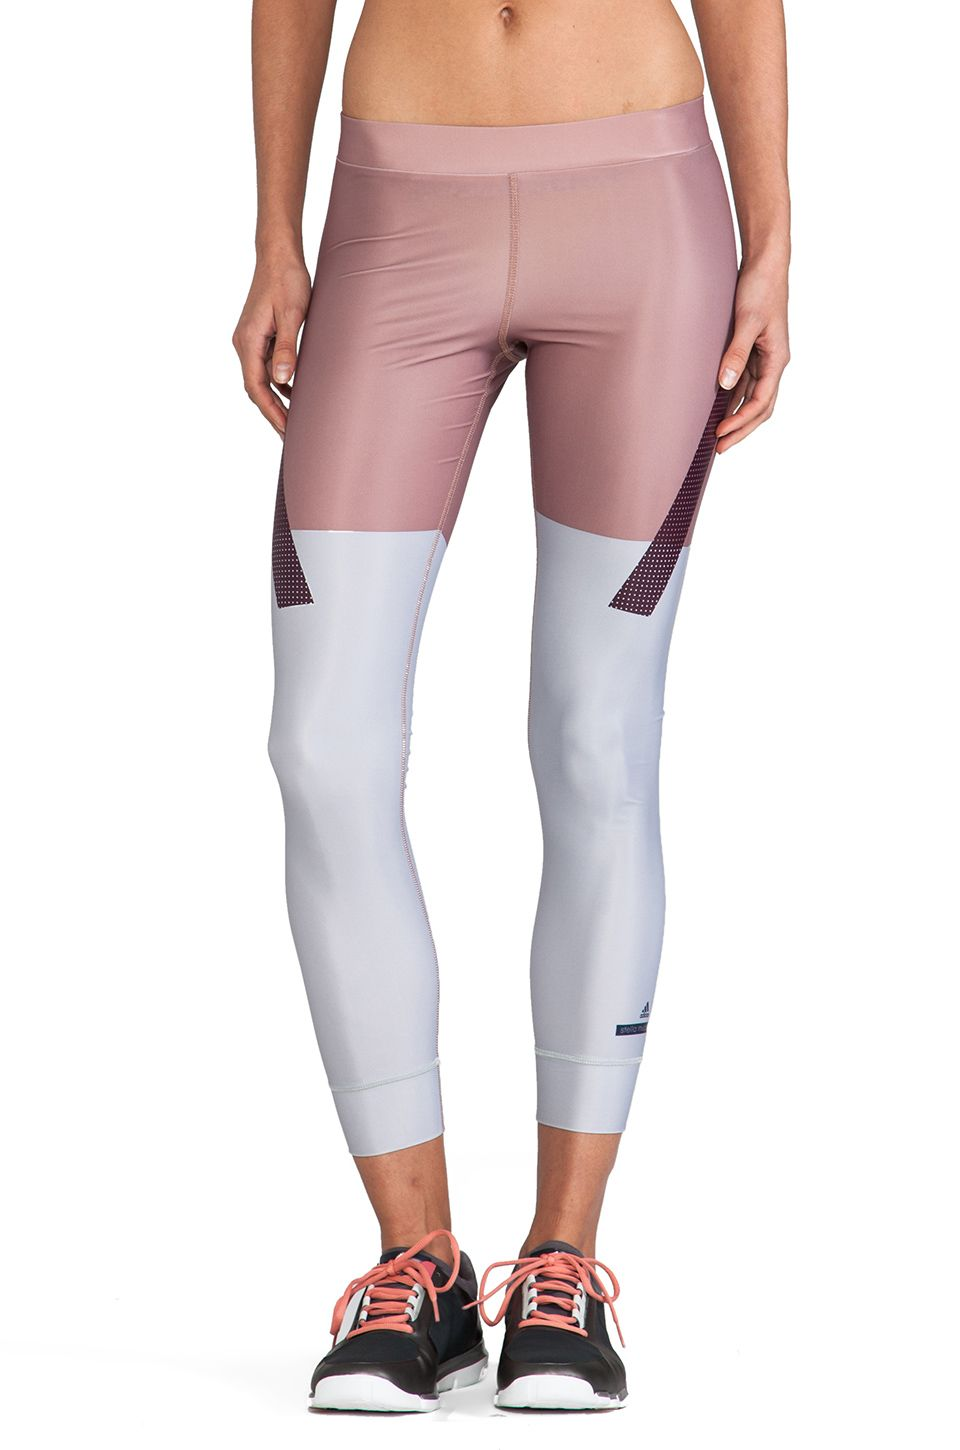 32069a67cb4 adidas by Stella McCartney Run TF Tight Legging in Tanned Sand   Universe